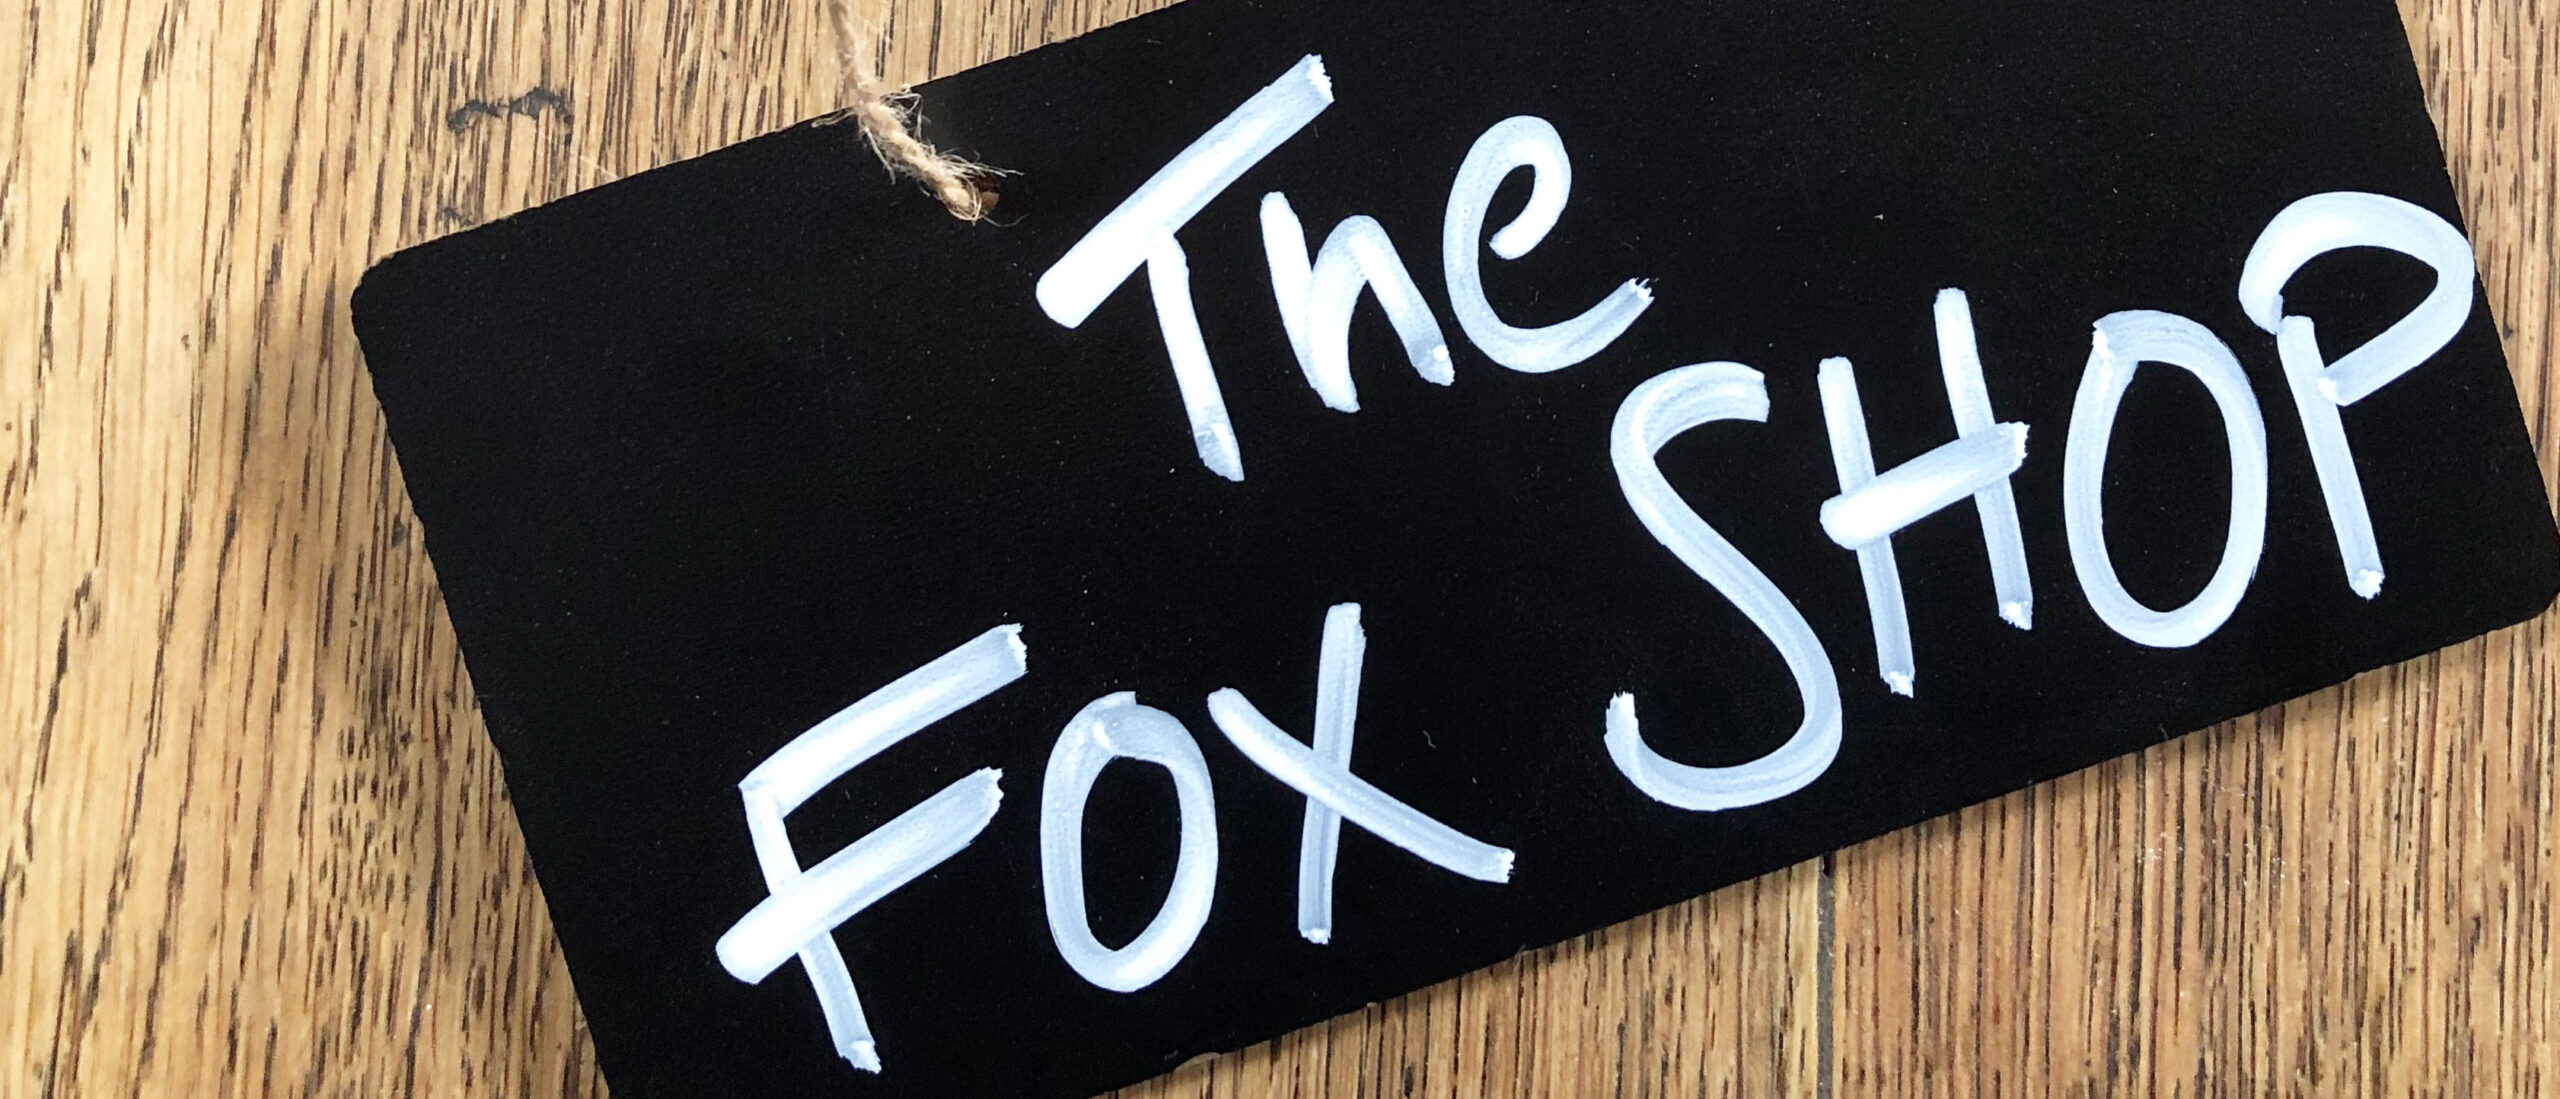 Have you visited the Fox Shop yet?